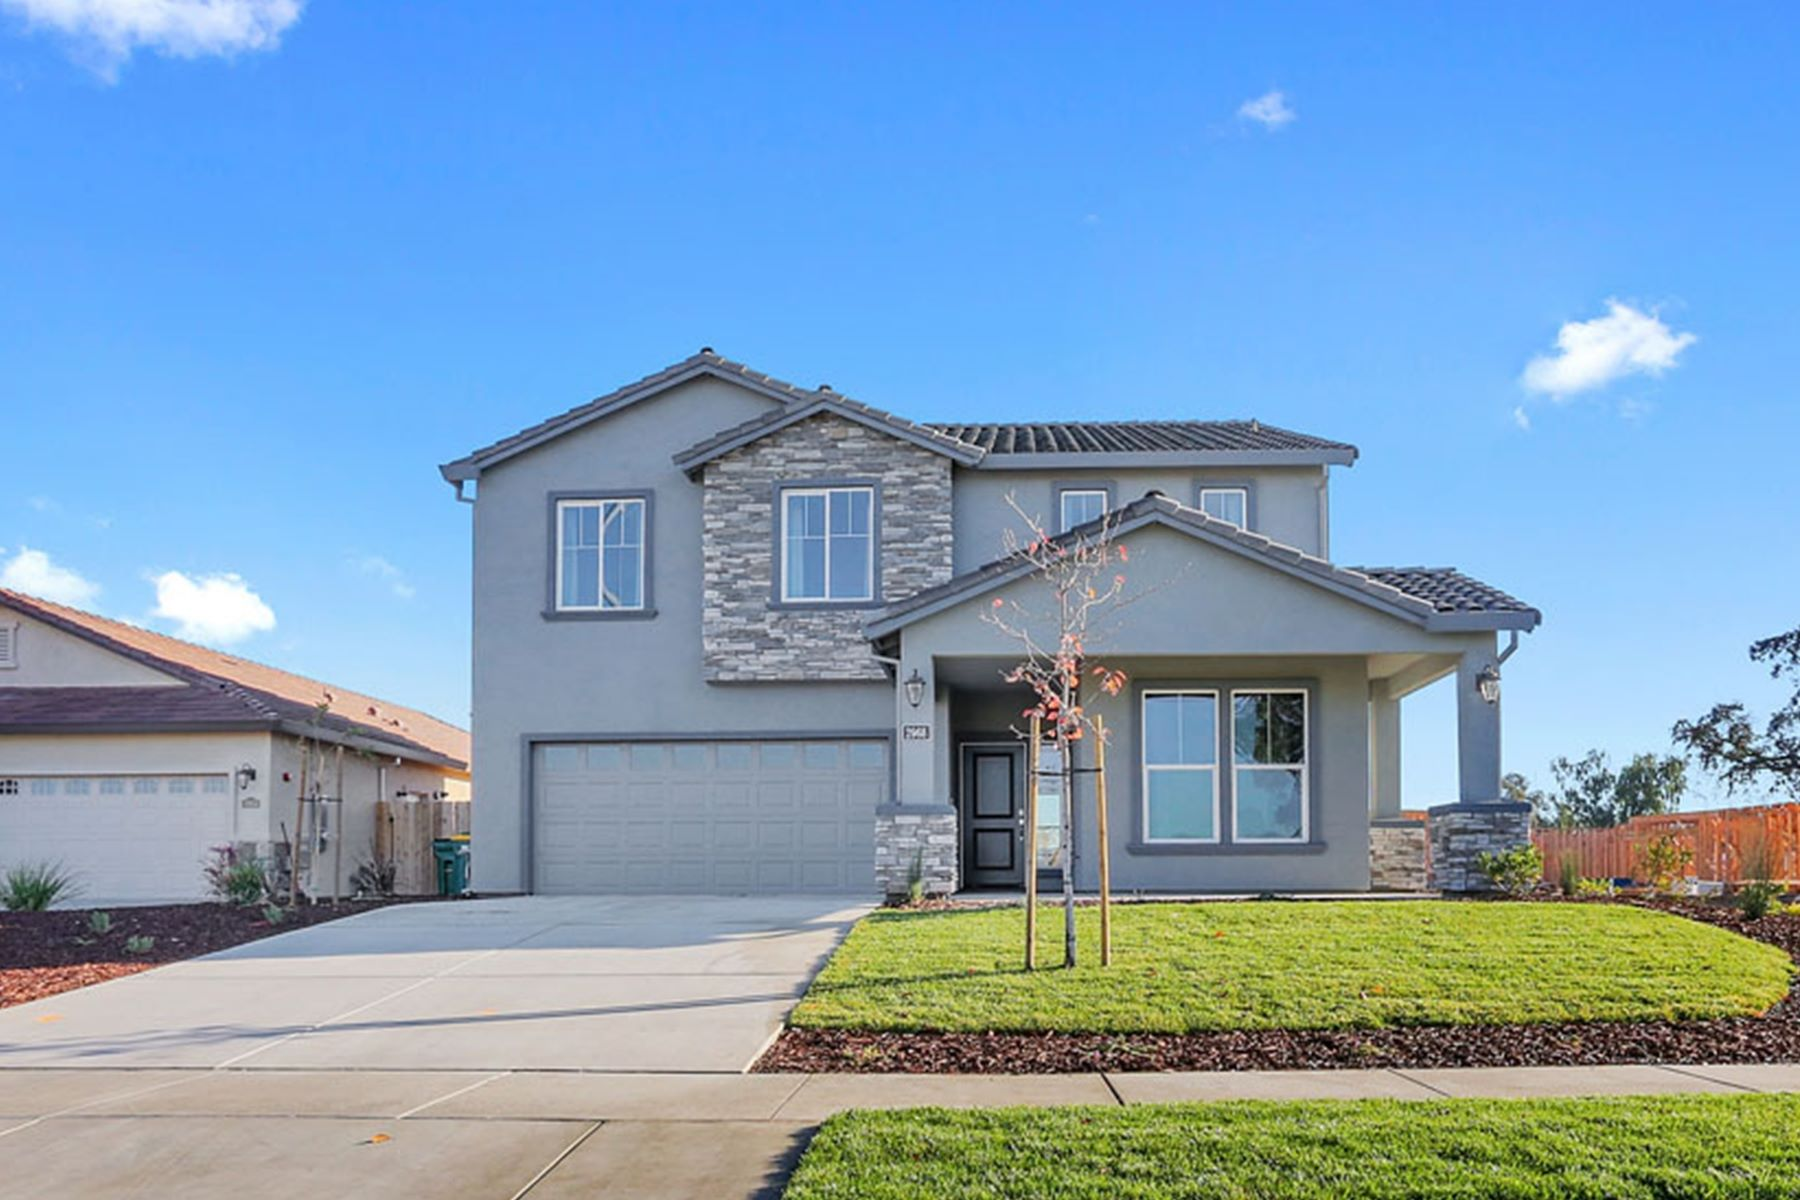 Single Family Homes for Sale at Brand New on the Street of Dreams 1755 Old Oak Drive Stockton, California 95206 United States